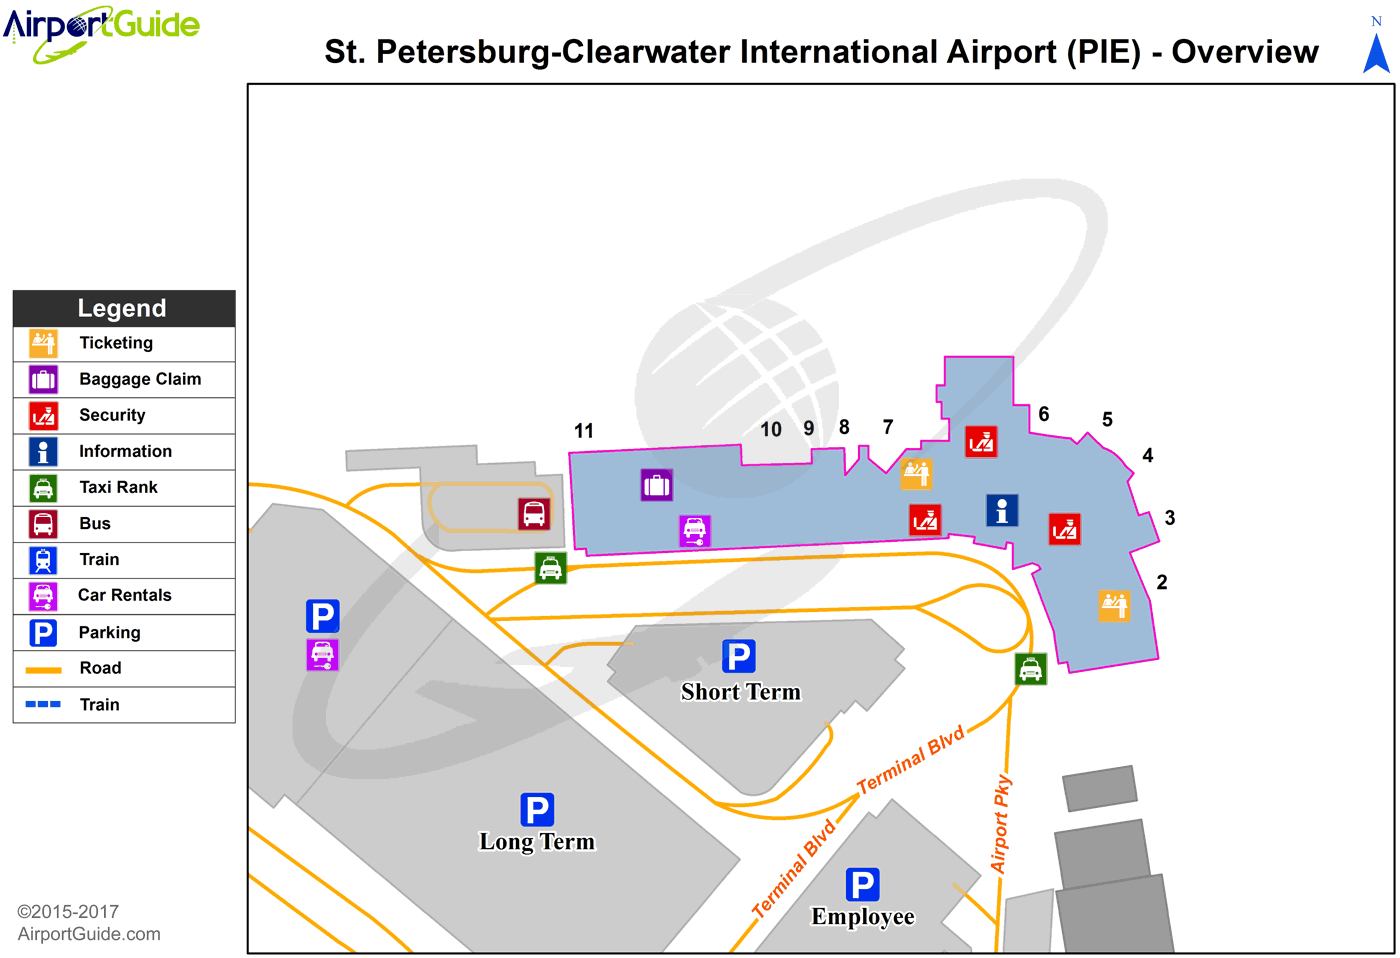 St Petersburg-Clearwater - St Pete-Clearwater International (PIE) Airport Terminal Map - Overview